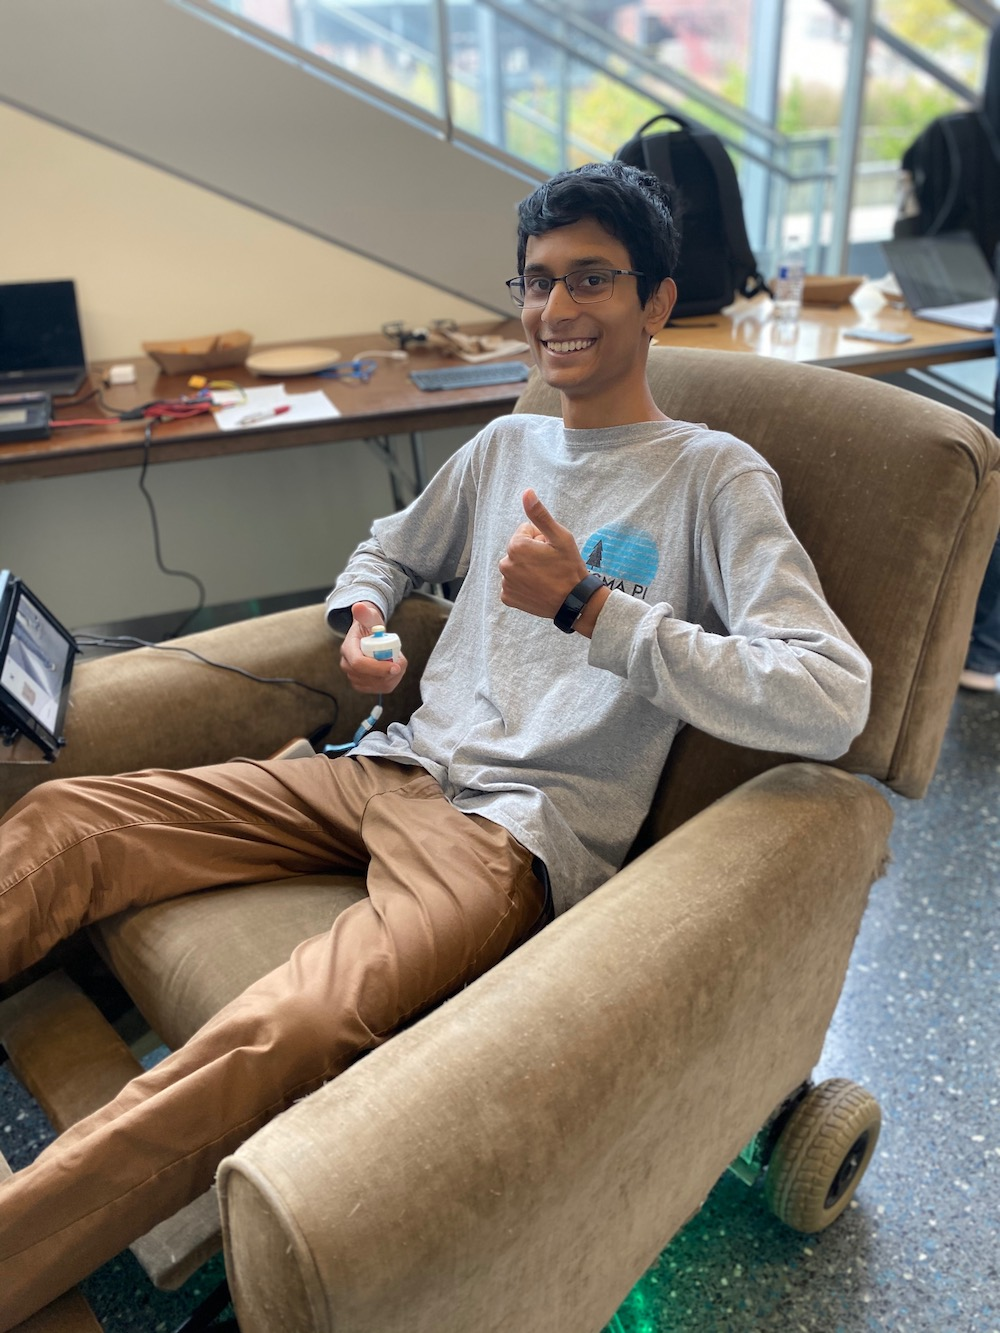 Amrit on the chair